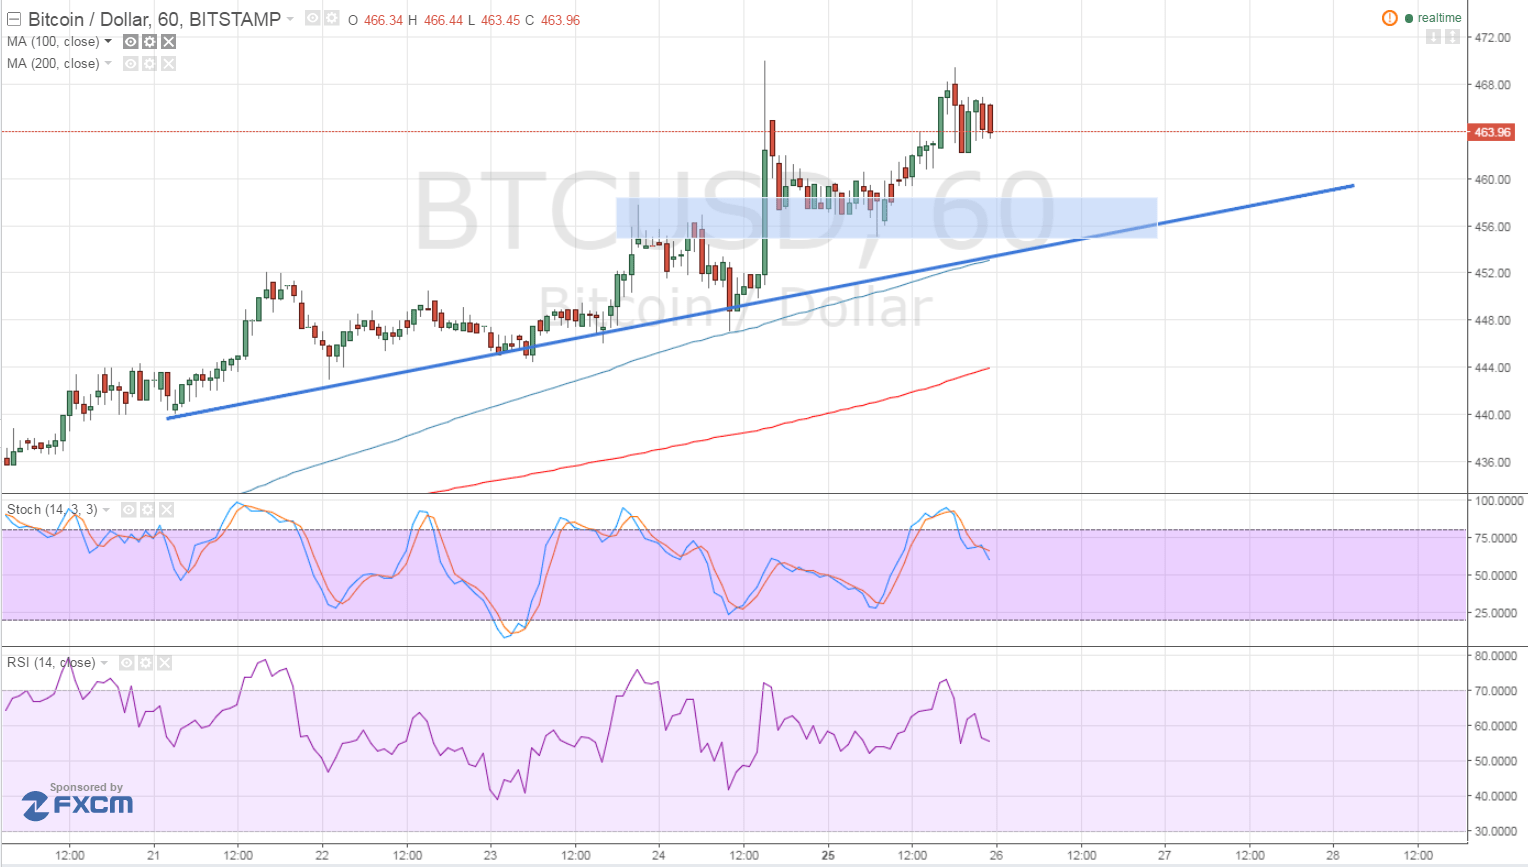 Bitcoin Price Technical Analysis for 04/26/2016 - Catching Small Pullbacks